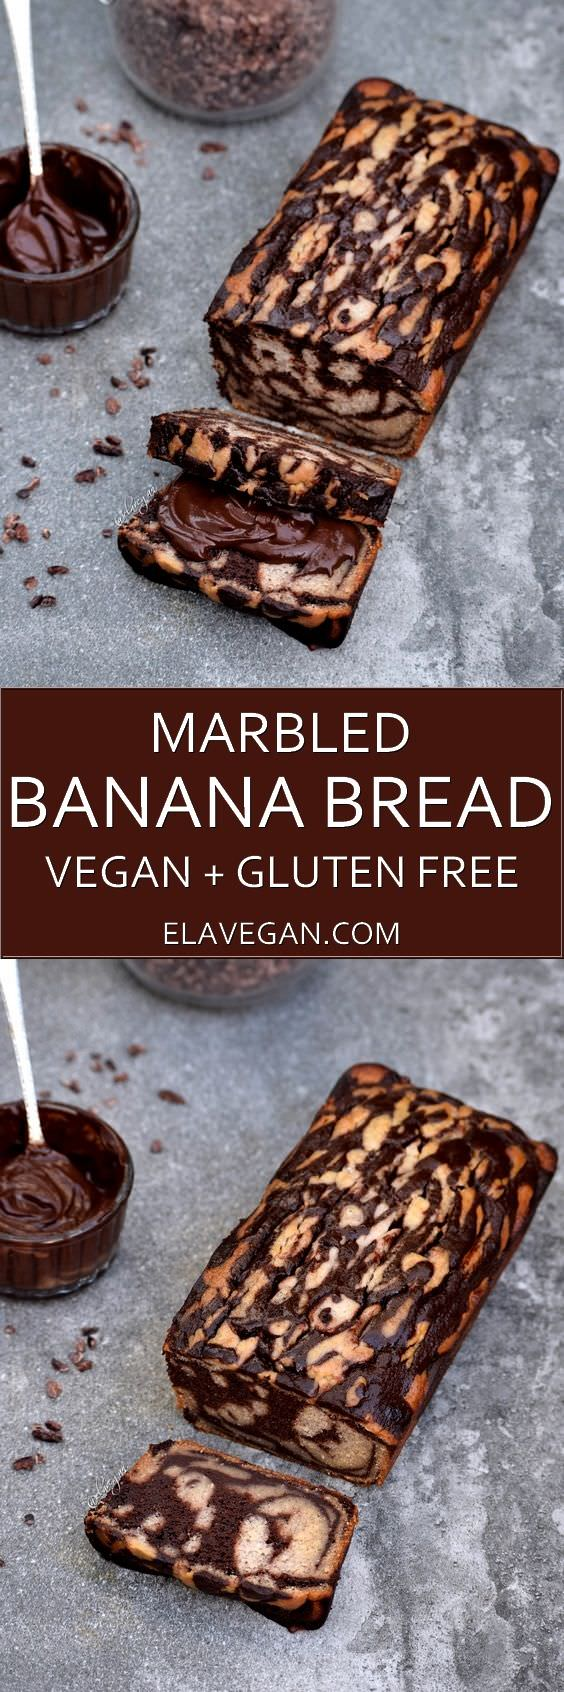 Marbled banana bread Pinterest